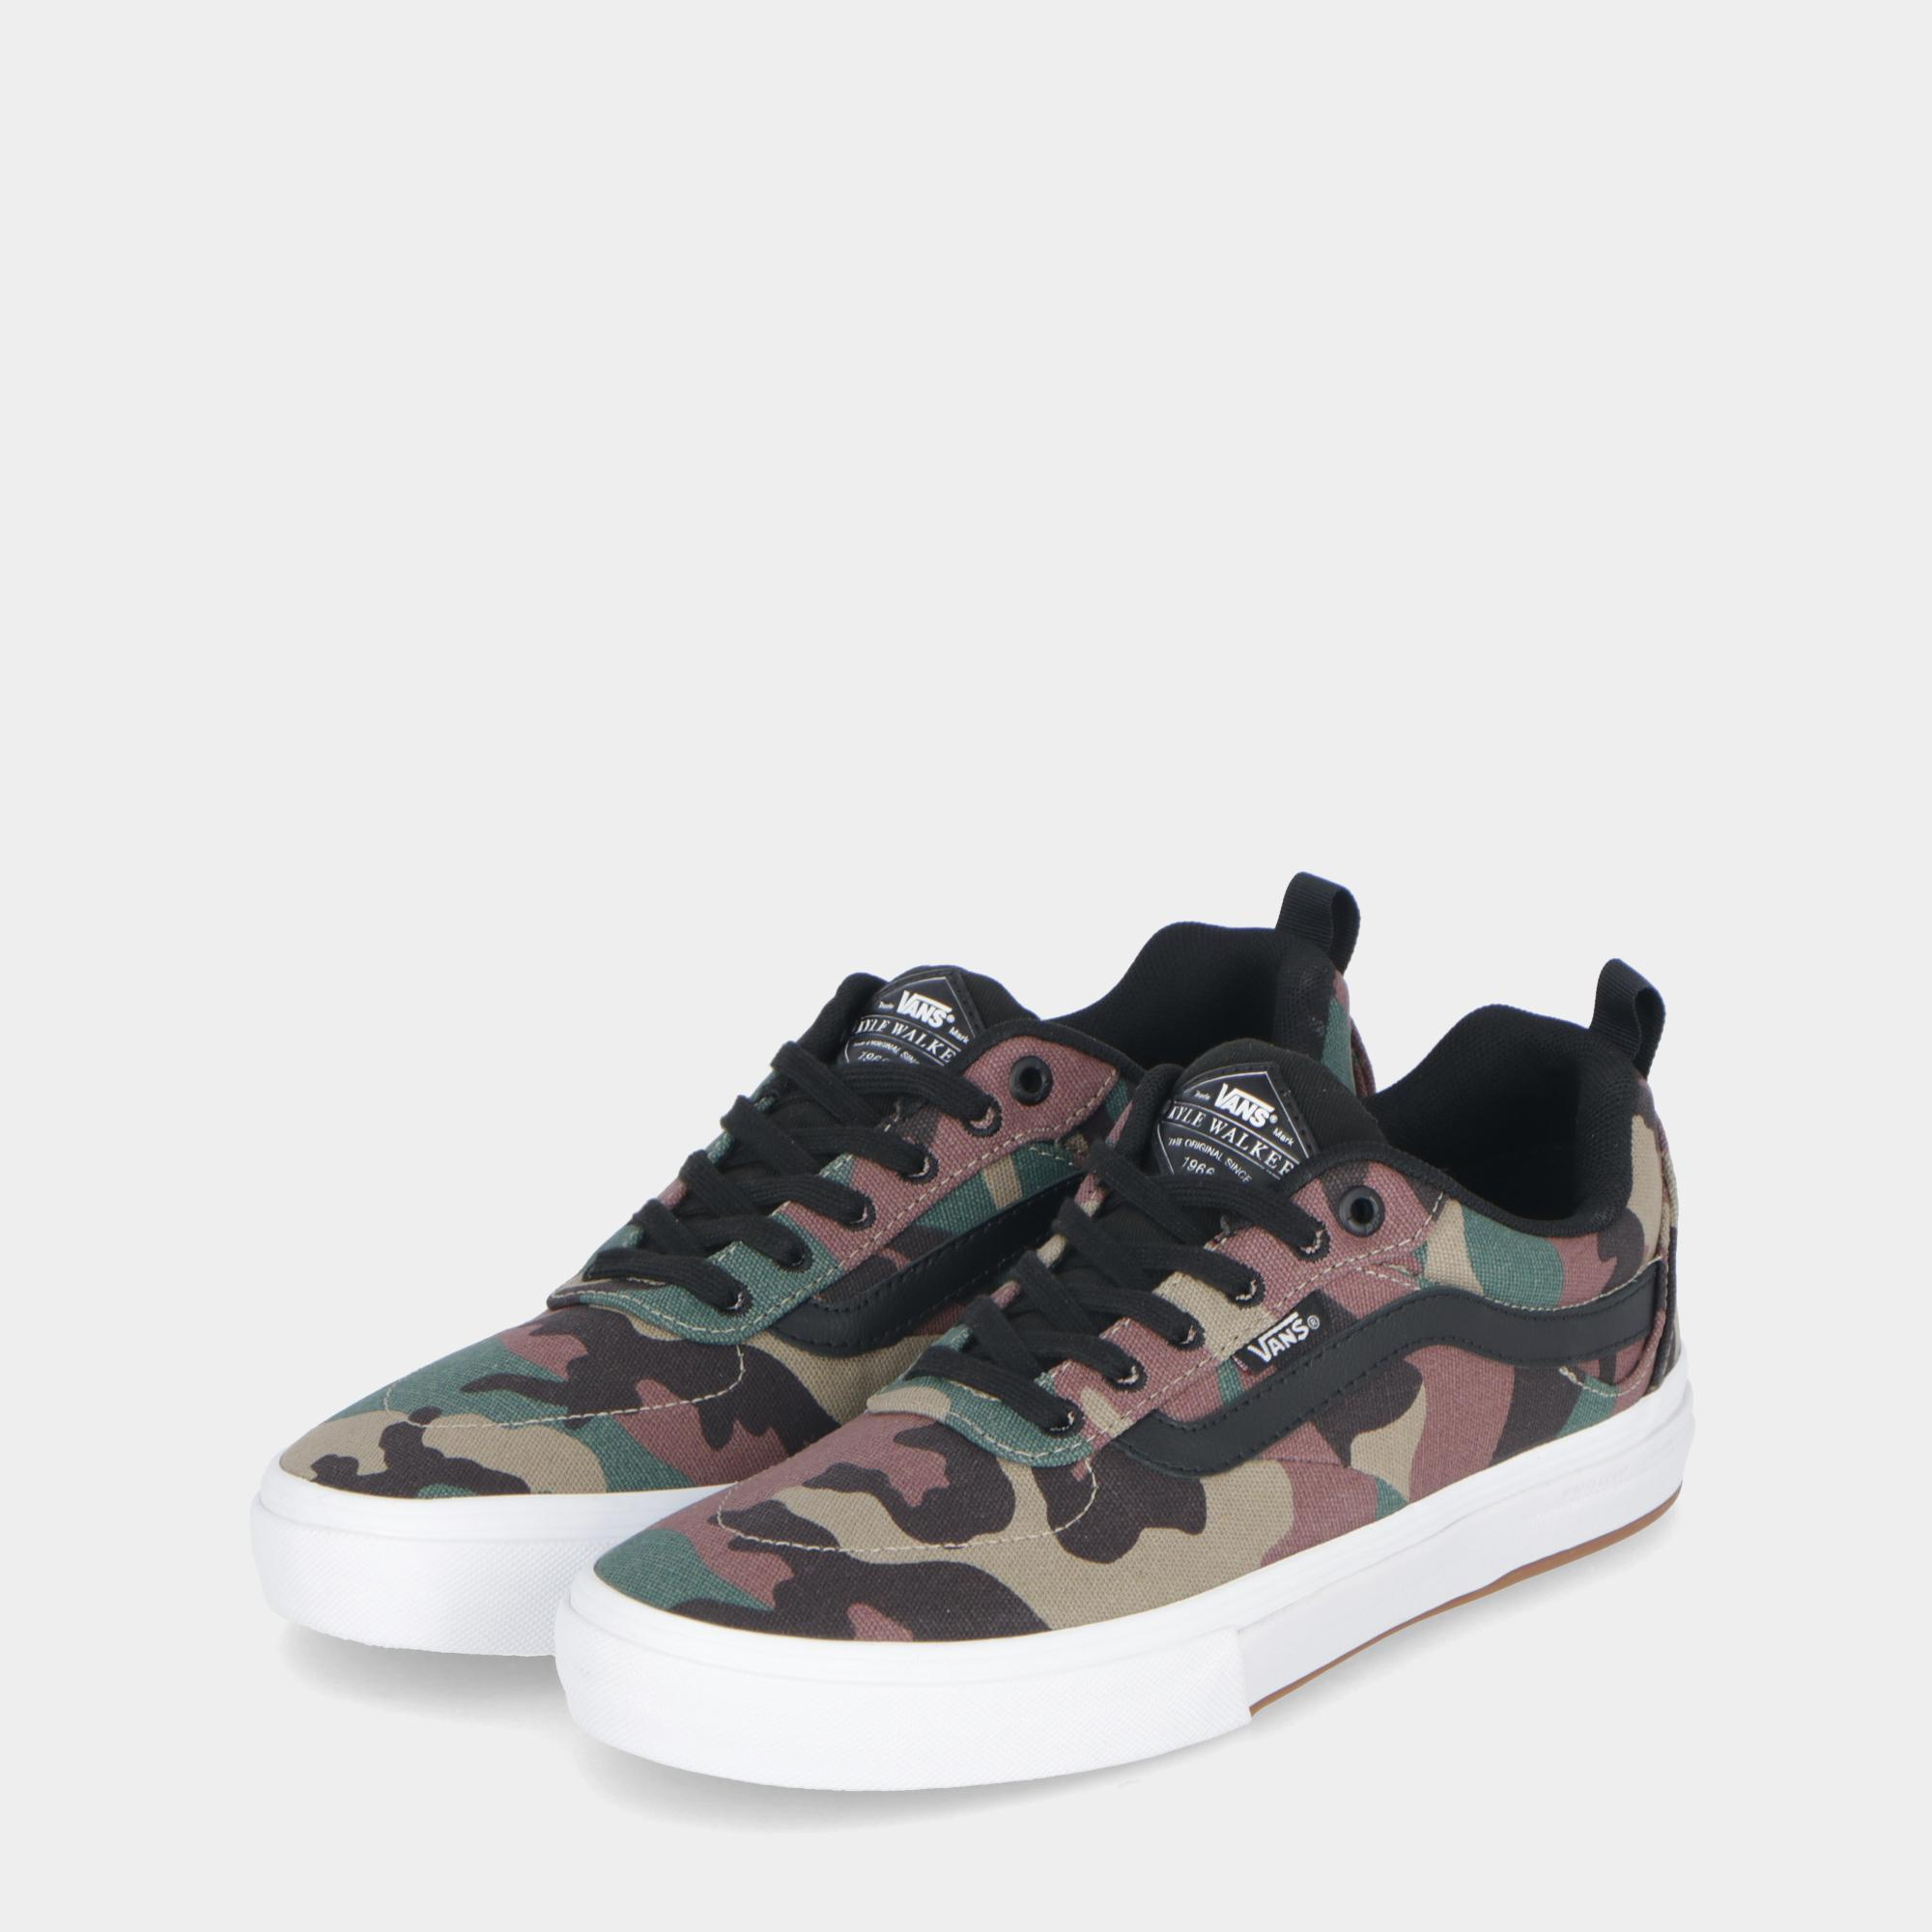 Vans Kyle Walker Pro Camo black/white